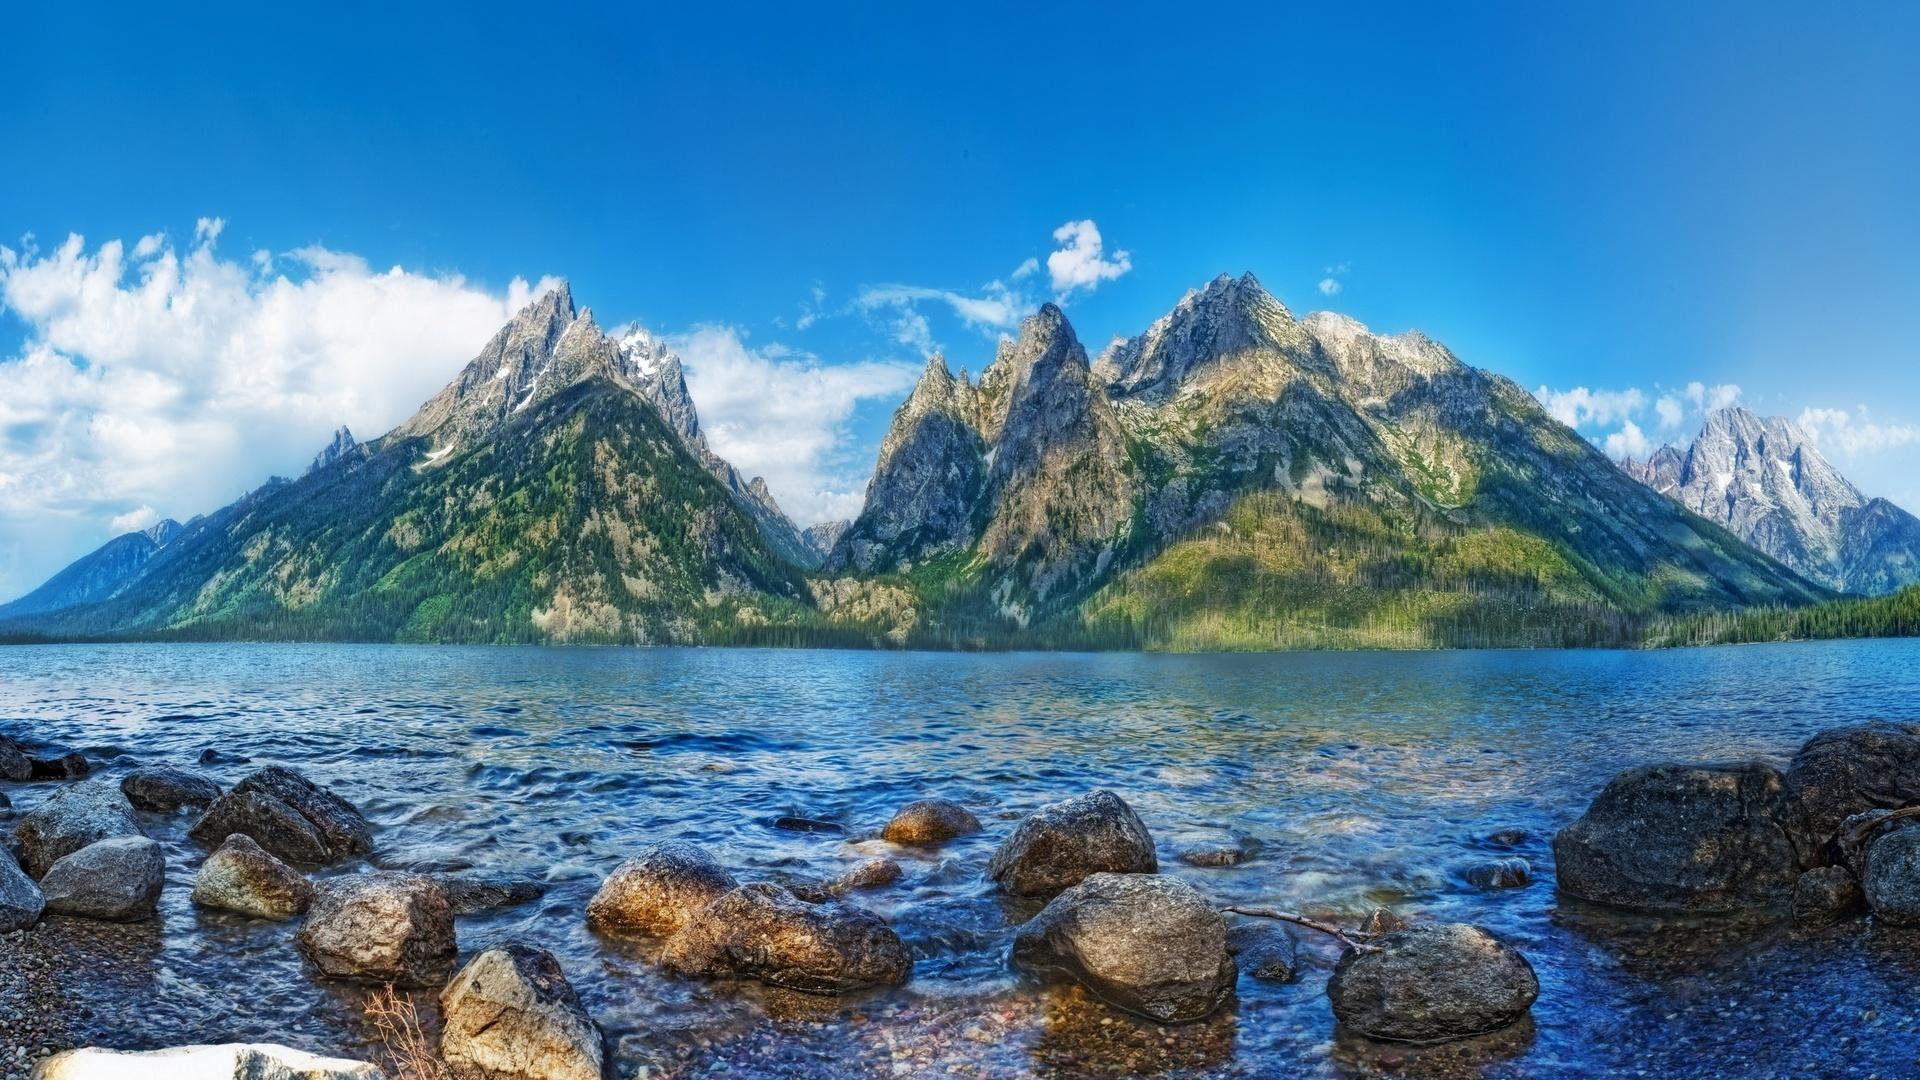 Animated Happy New Year D Hd Jenny Lake In Grand Teton National Park Wallpaper